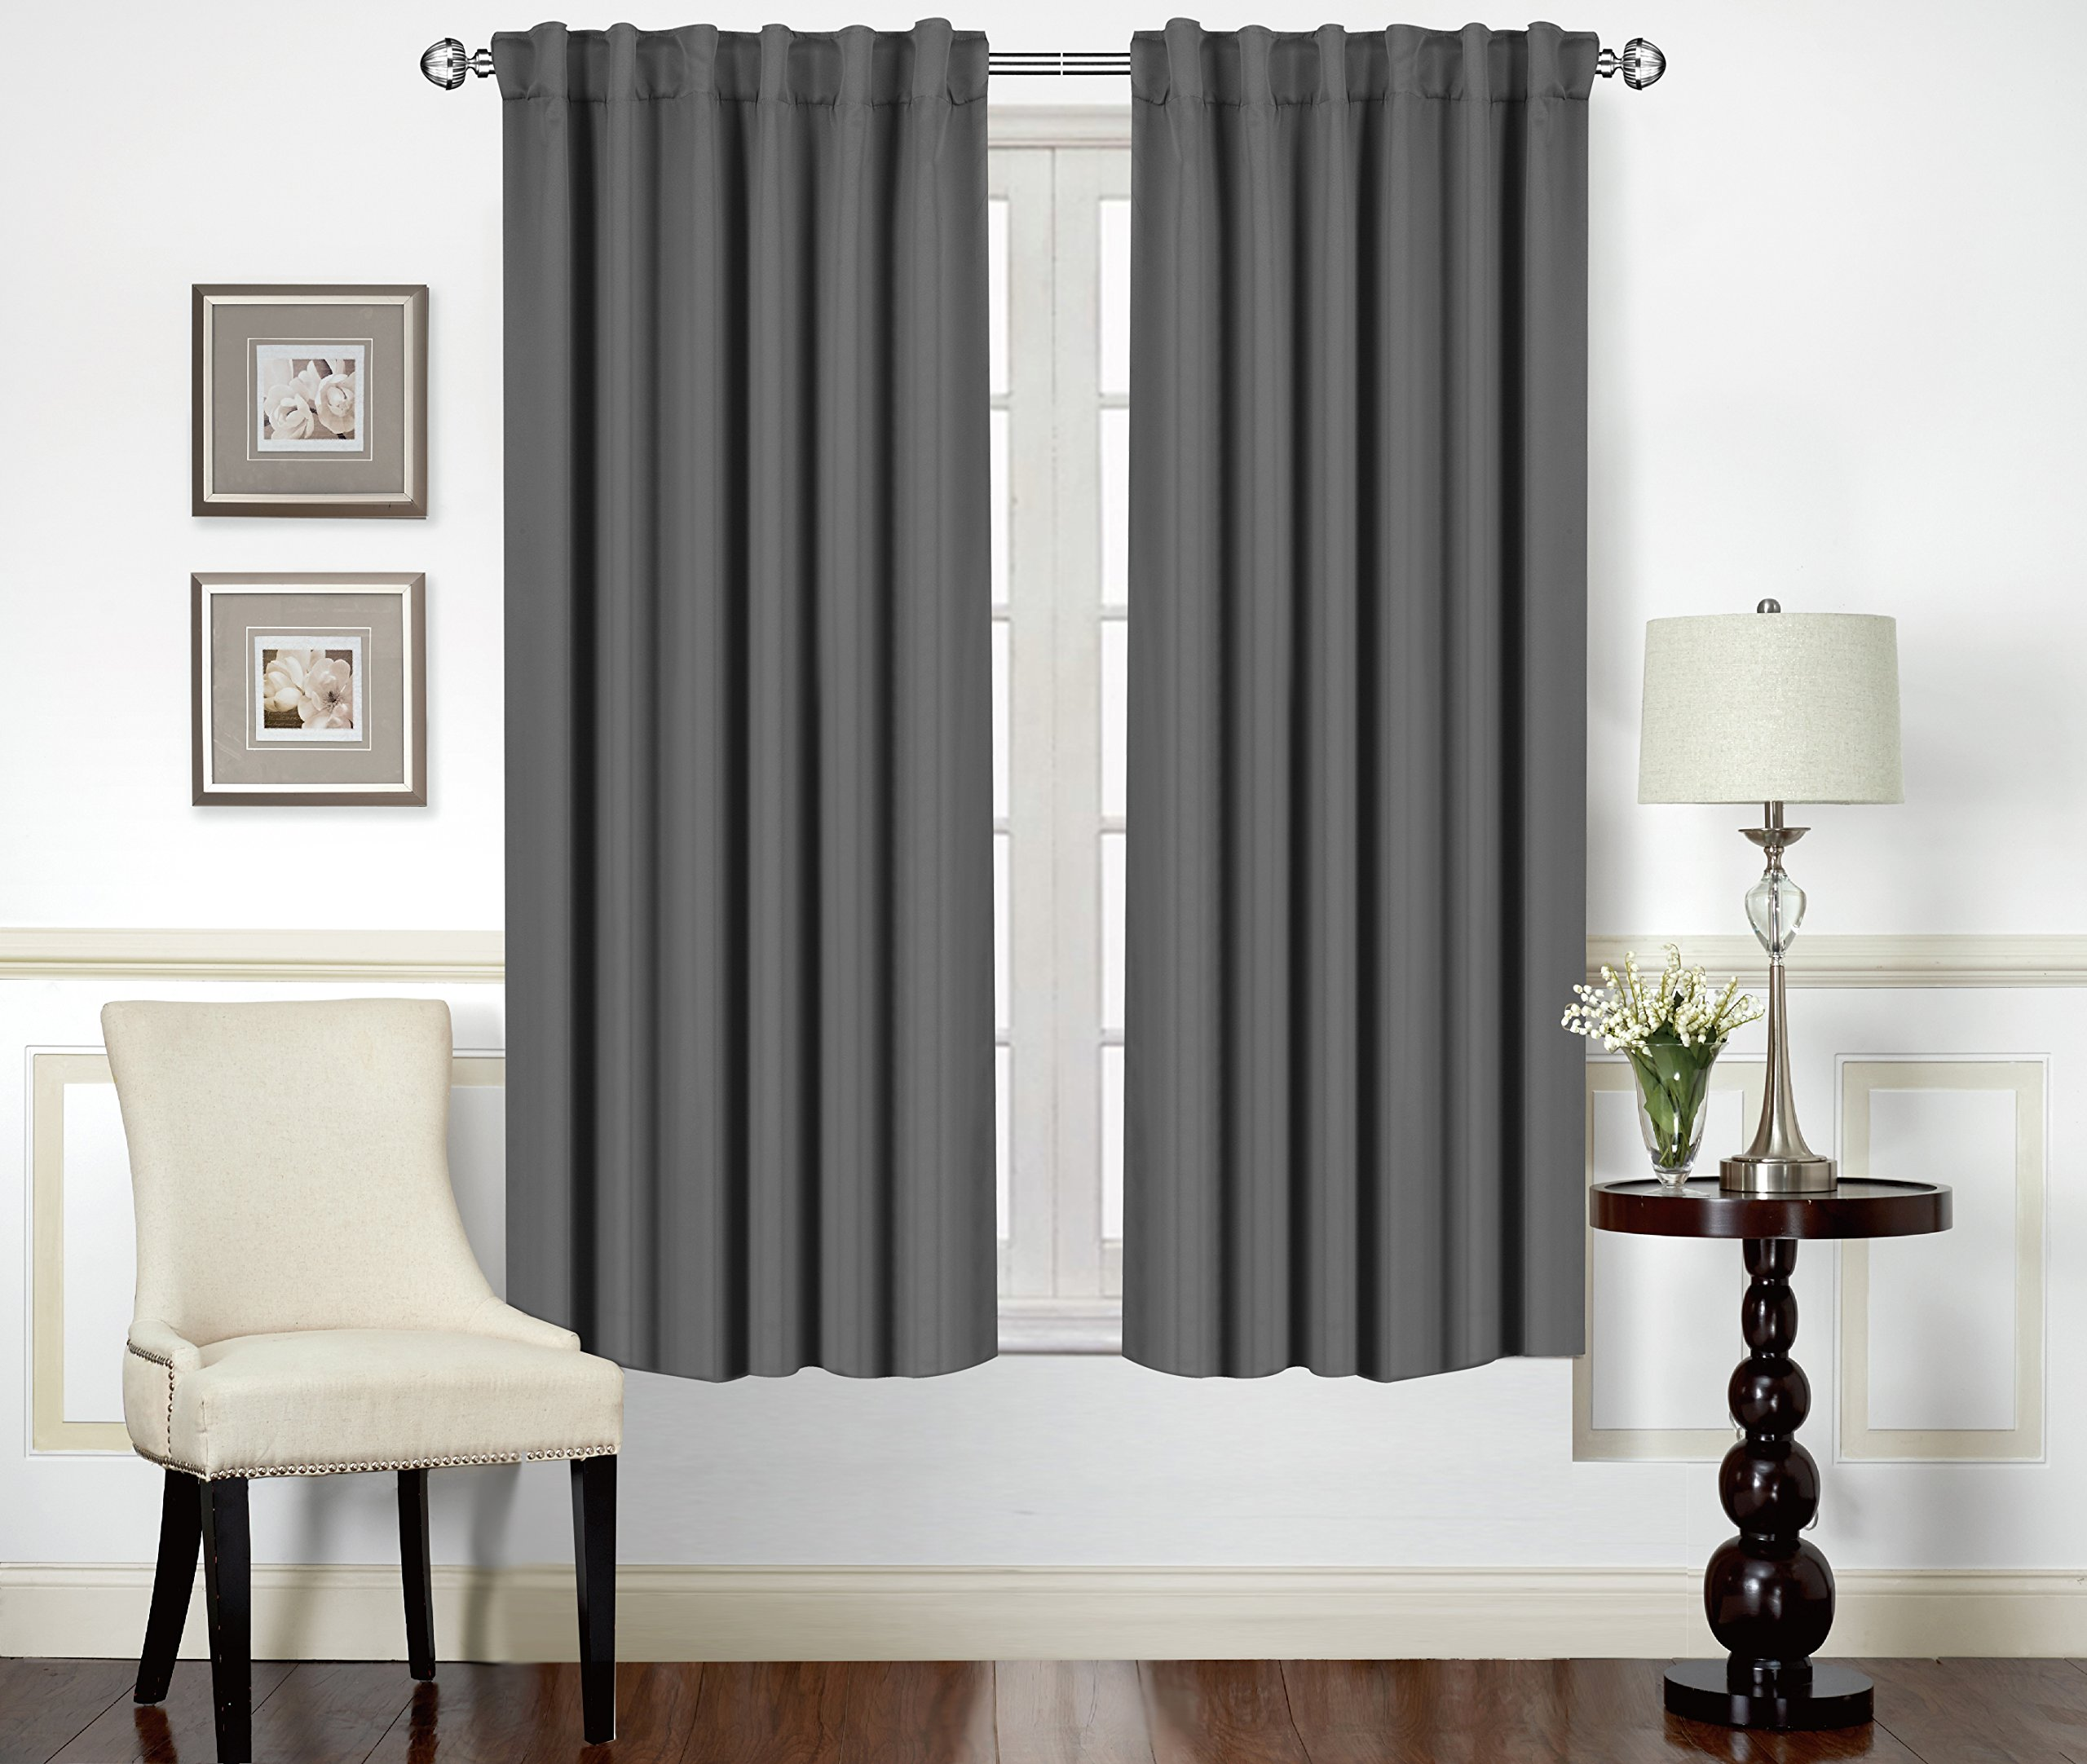 Blackout Room Darkening Curtains Window Panel Drapes -Grey